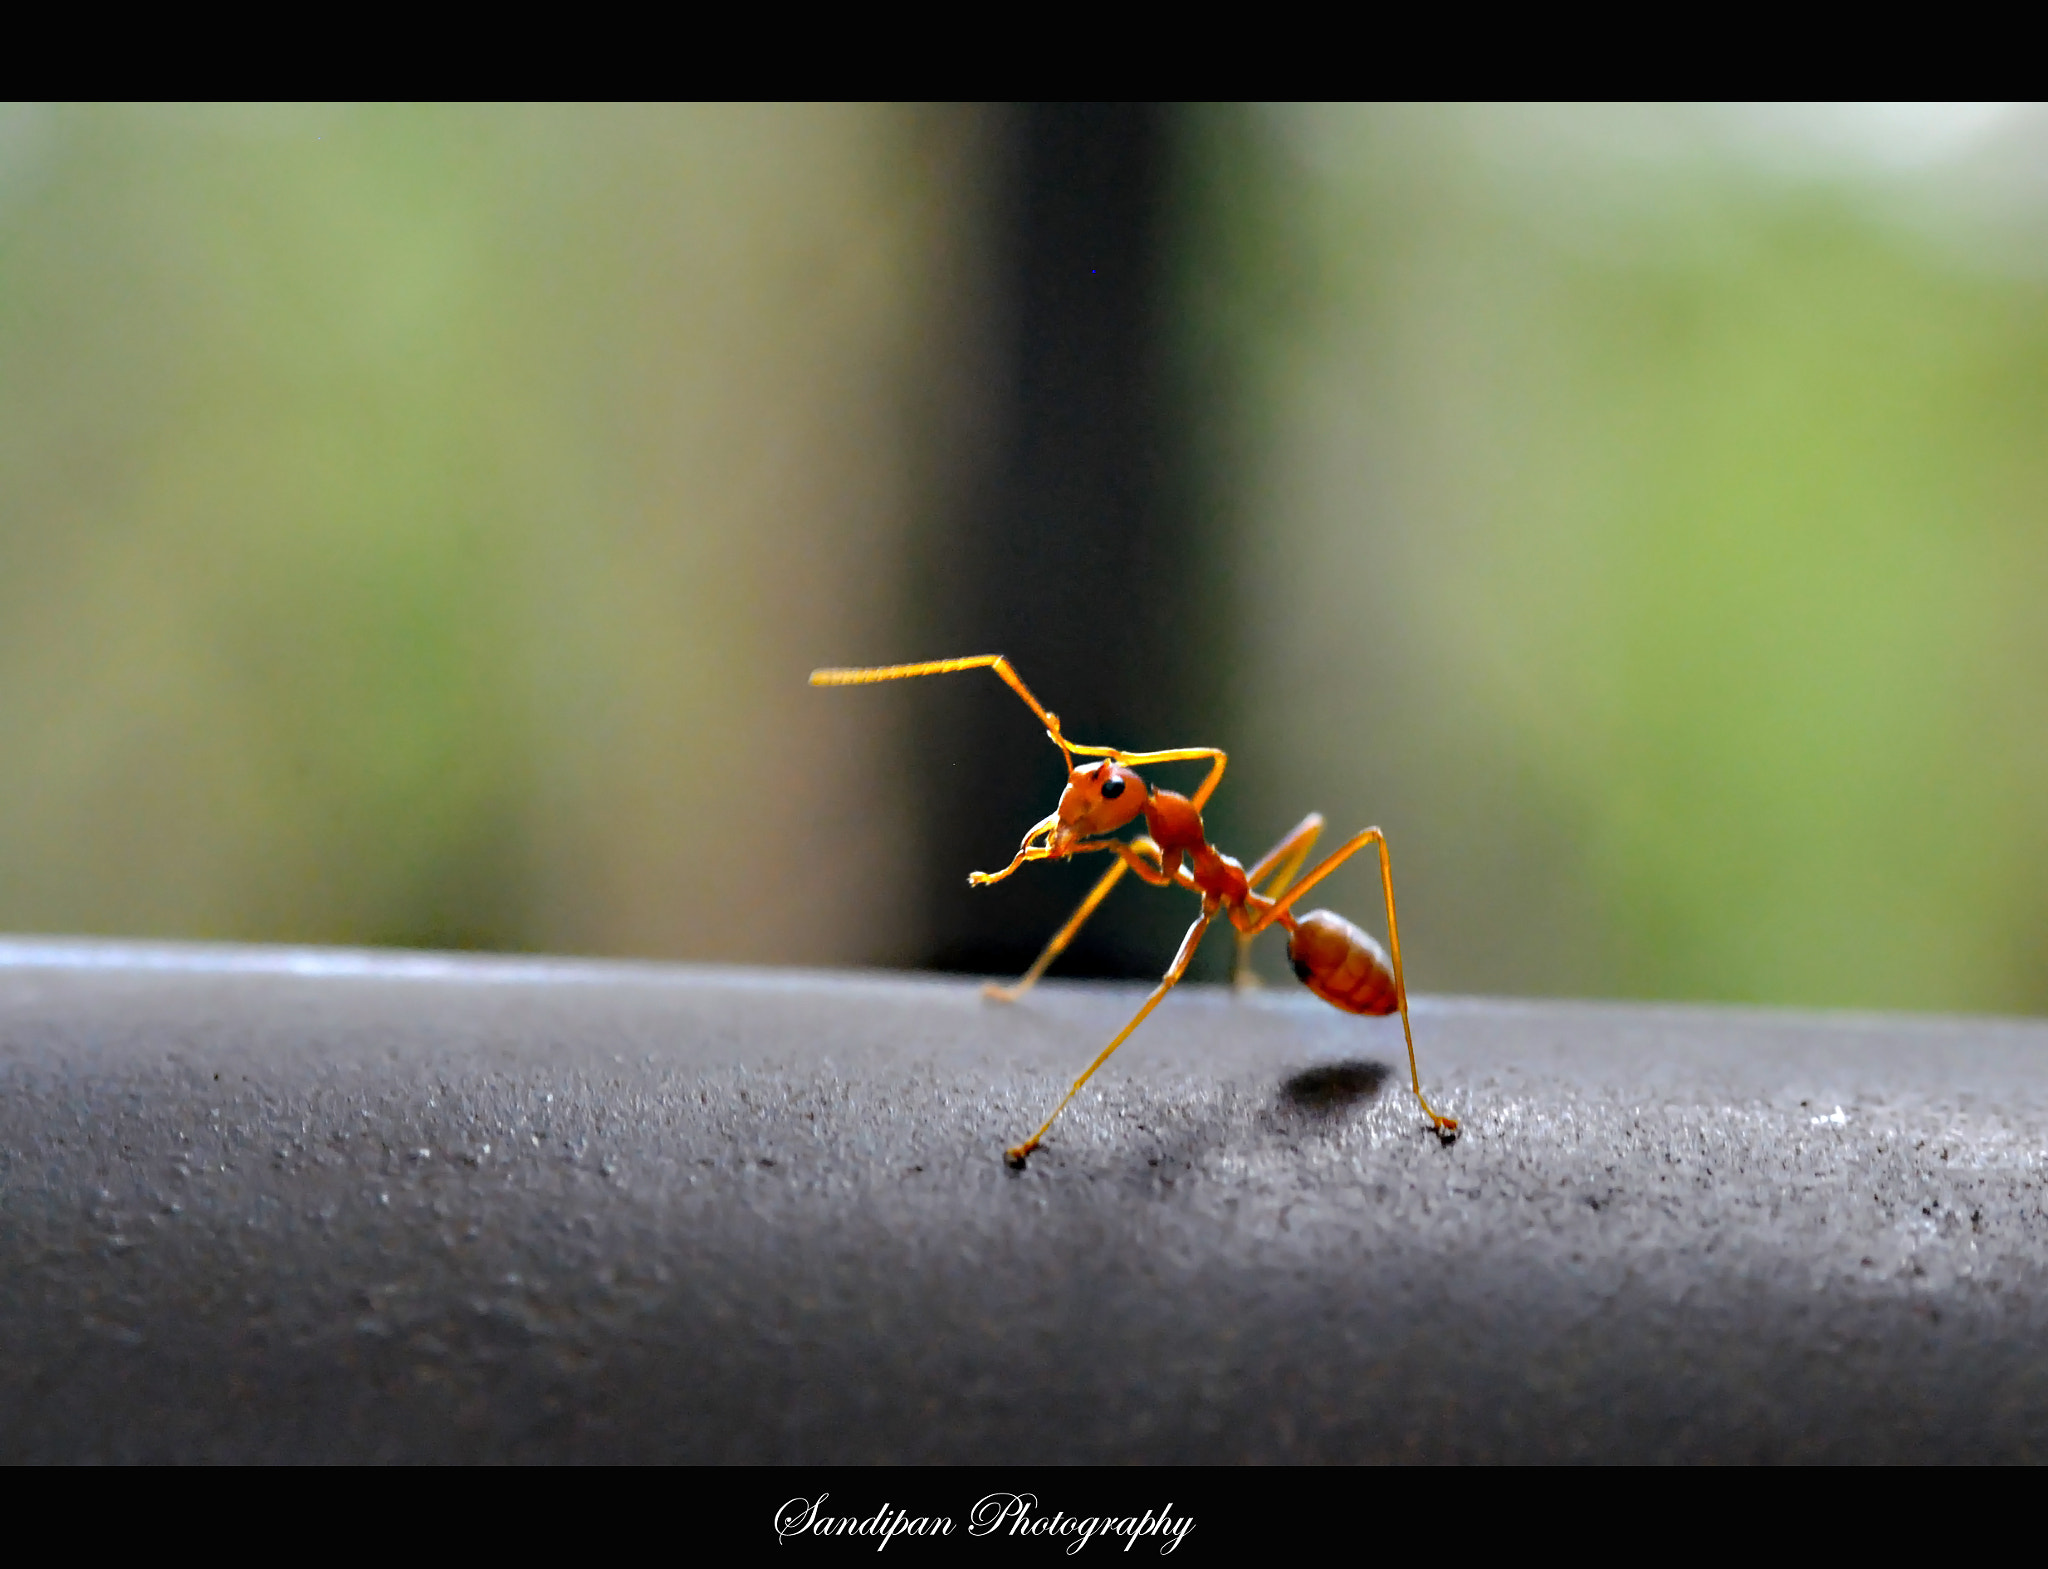 Photograph I can also dance by Sandipan Bhattacharya on 500px